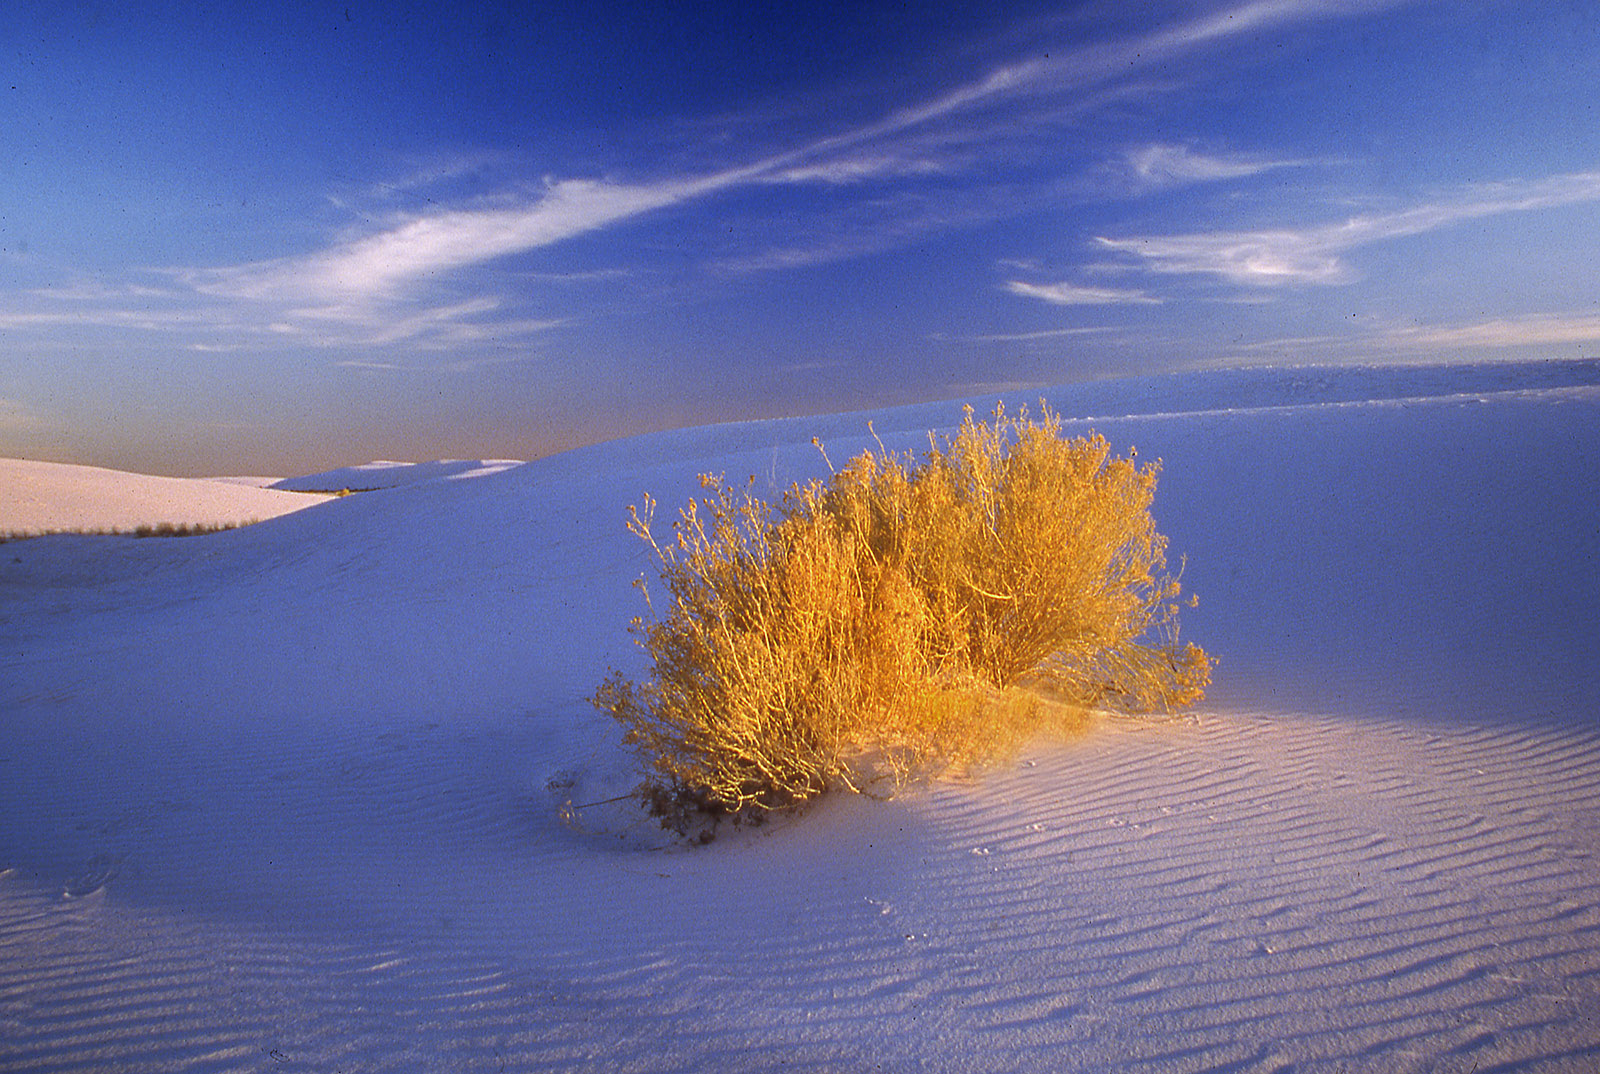 A Splash of Light at White Sands, New Mexico